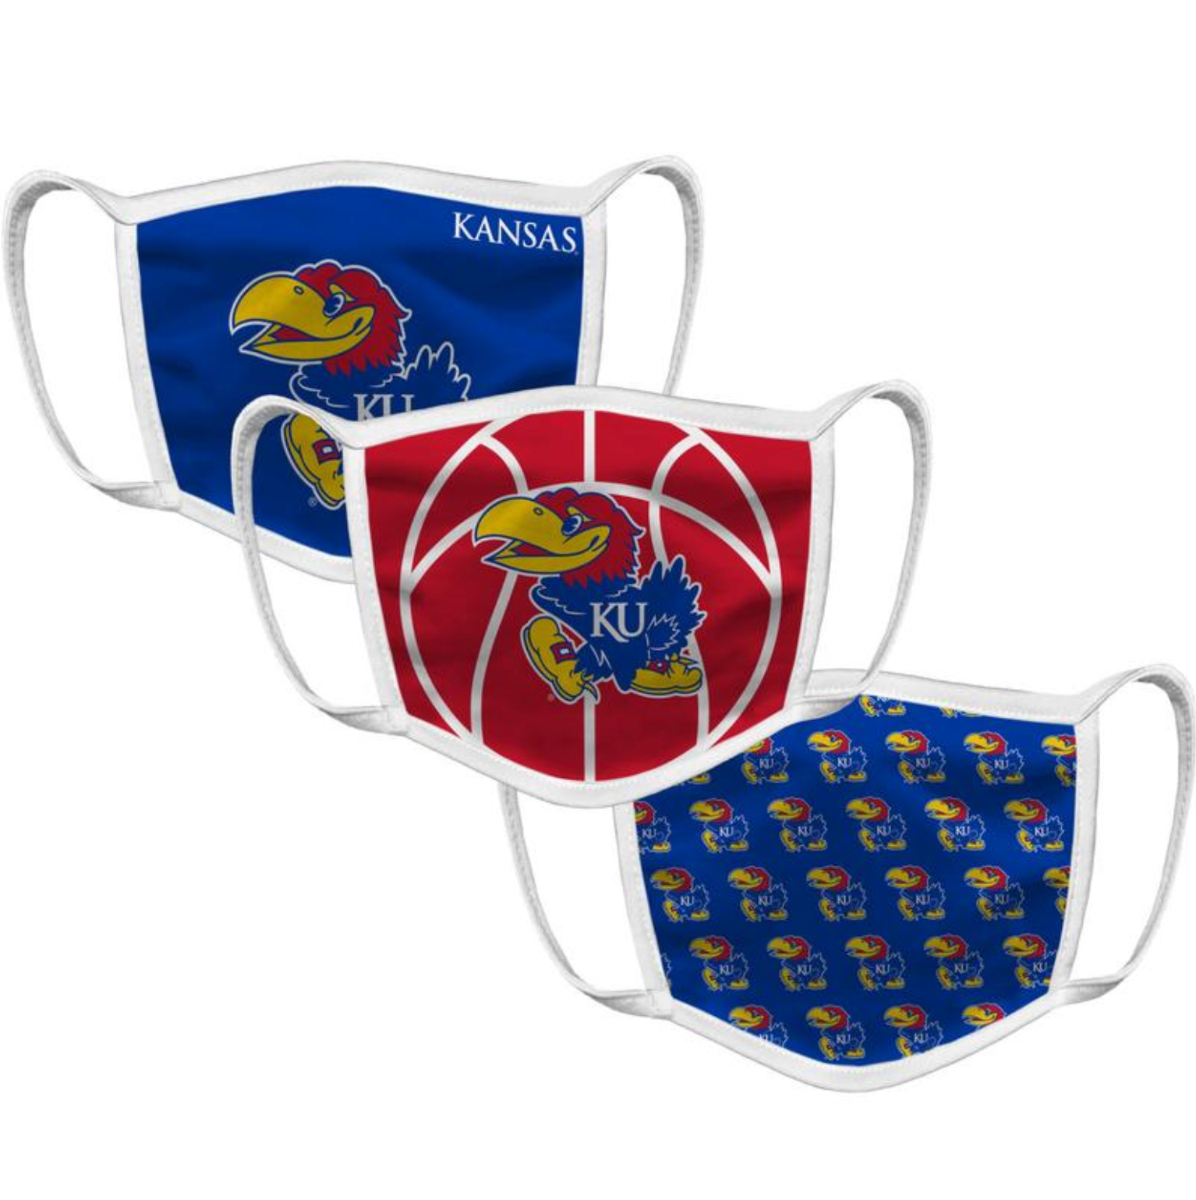 Kansas Face Mask (3 Pack)